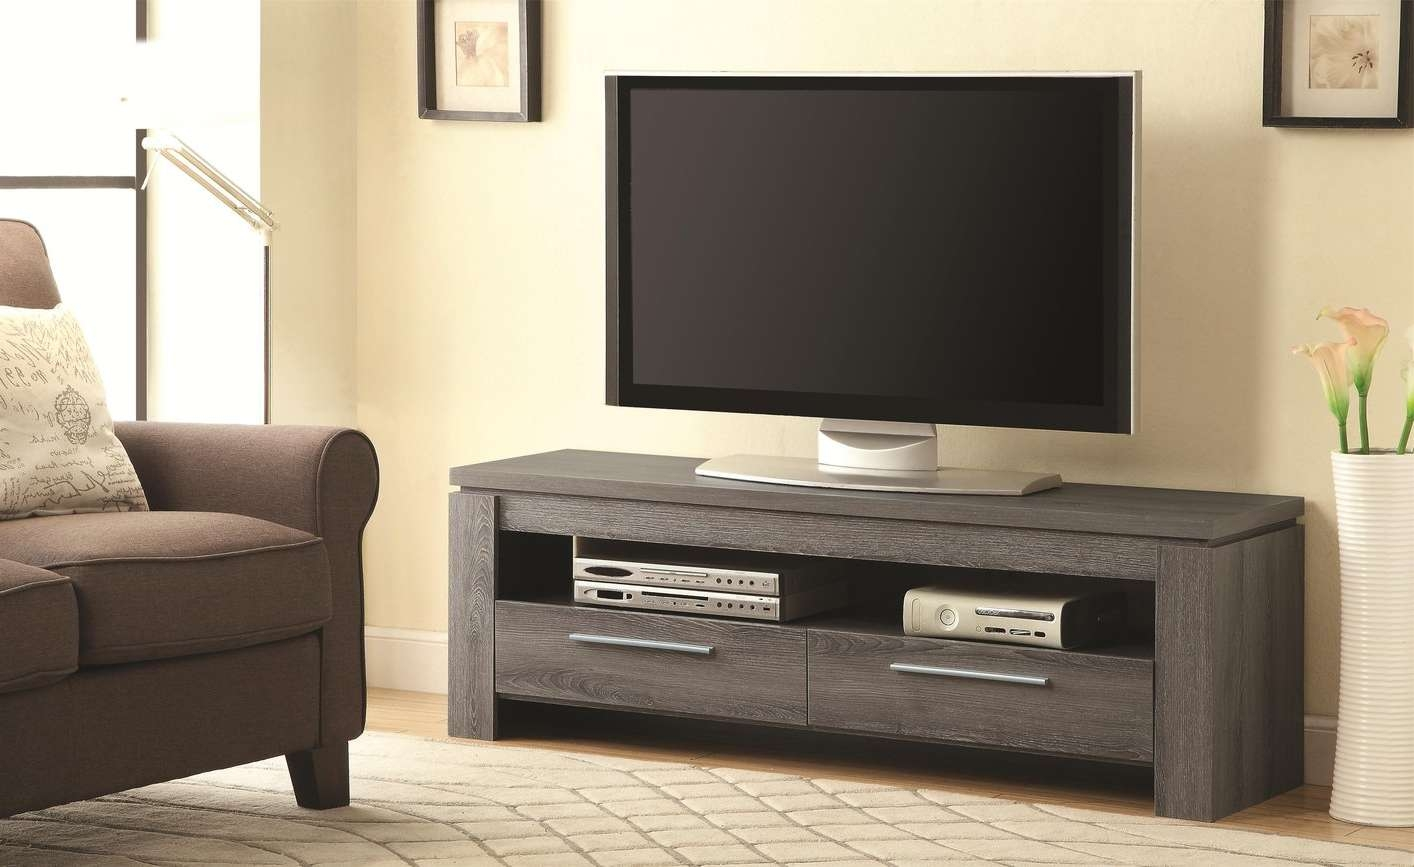 Grey Wood Tv Stand – Steal A Sofa Furniture Outlet Los Angeles Ca Within Wooden Tv Cabinets (View 7 of 20)